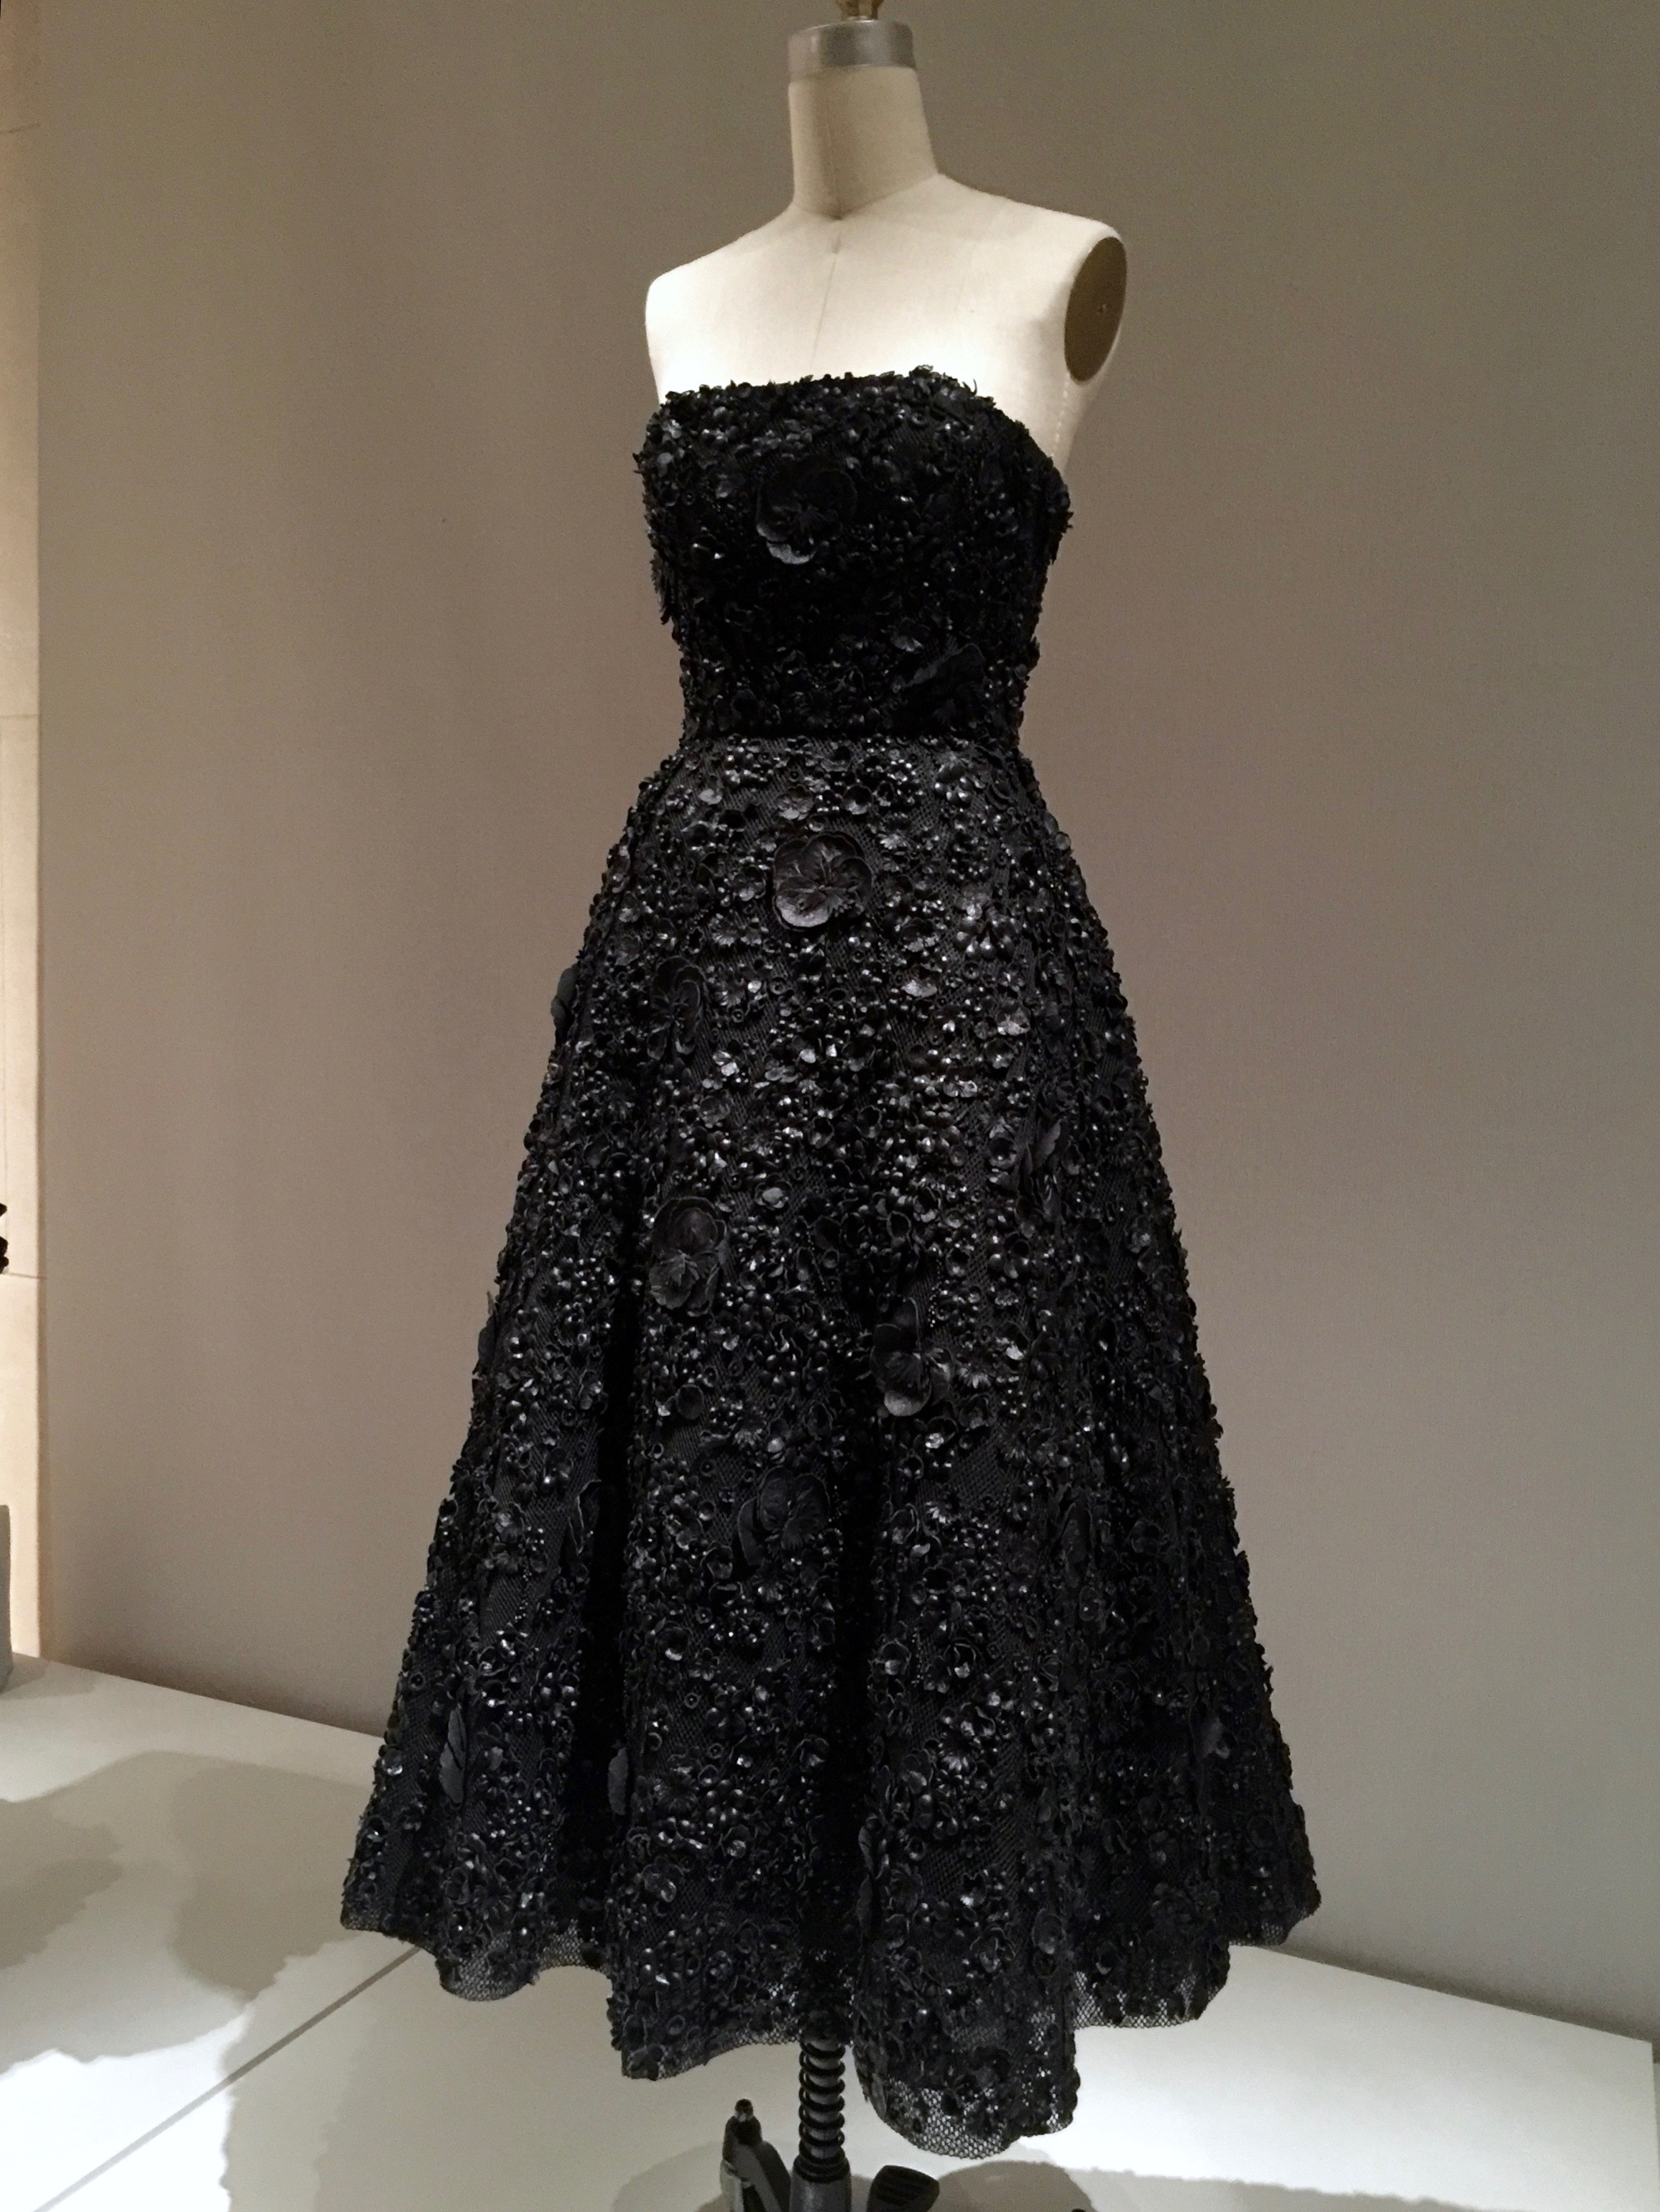 HOUSE OF DIOR, Raf Simons DRESS, Autumn/Winter 2013-14,pret-a-porter  Machine-sewn black silk taffeta with overlay of black cotton-synthetic mesh, hand-embroidered with leather artificial flowers and black beads